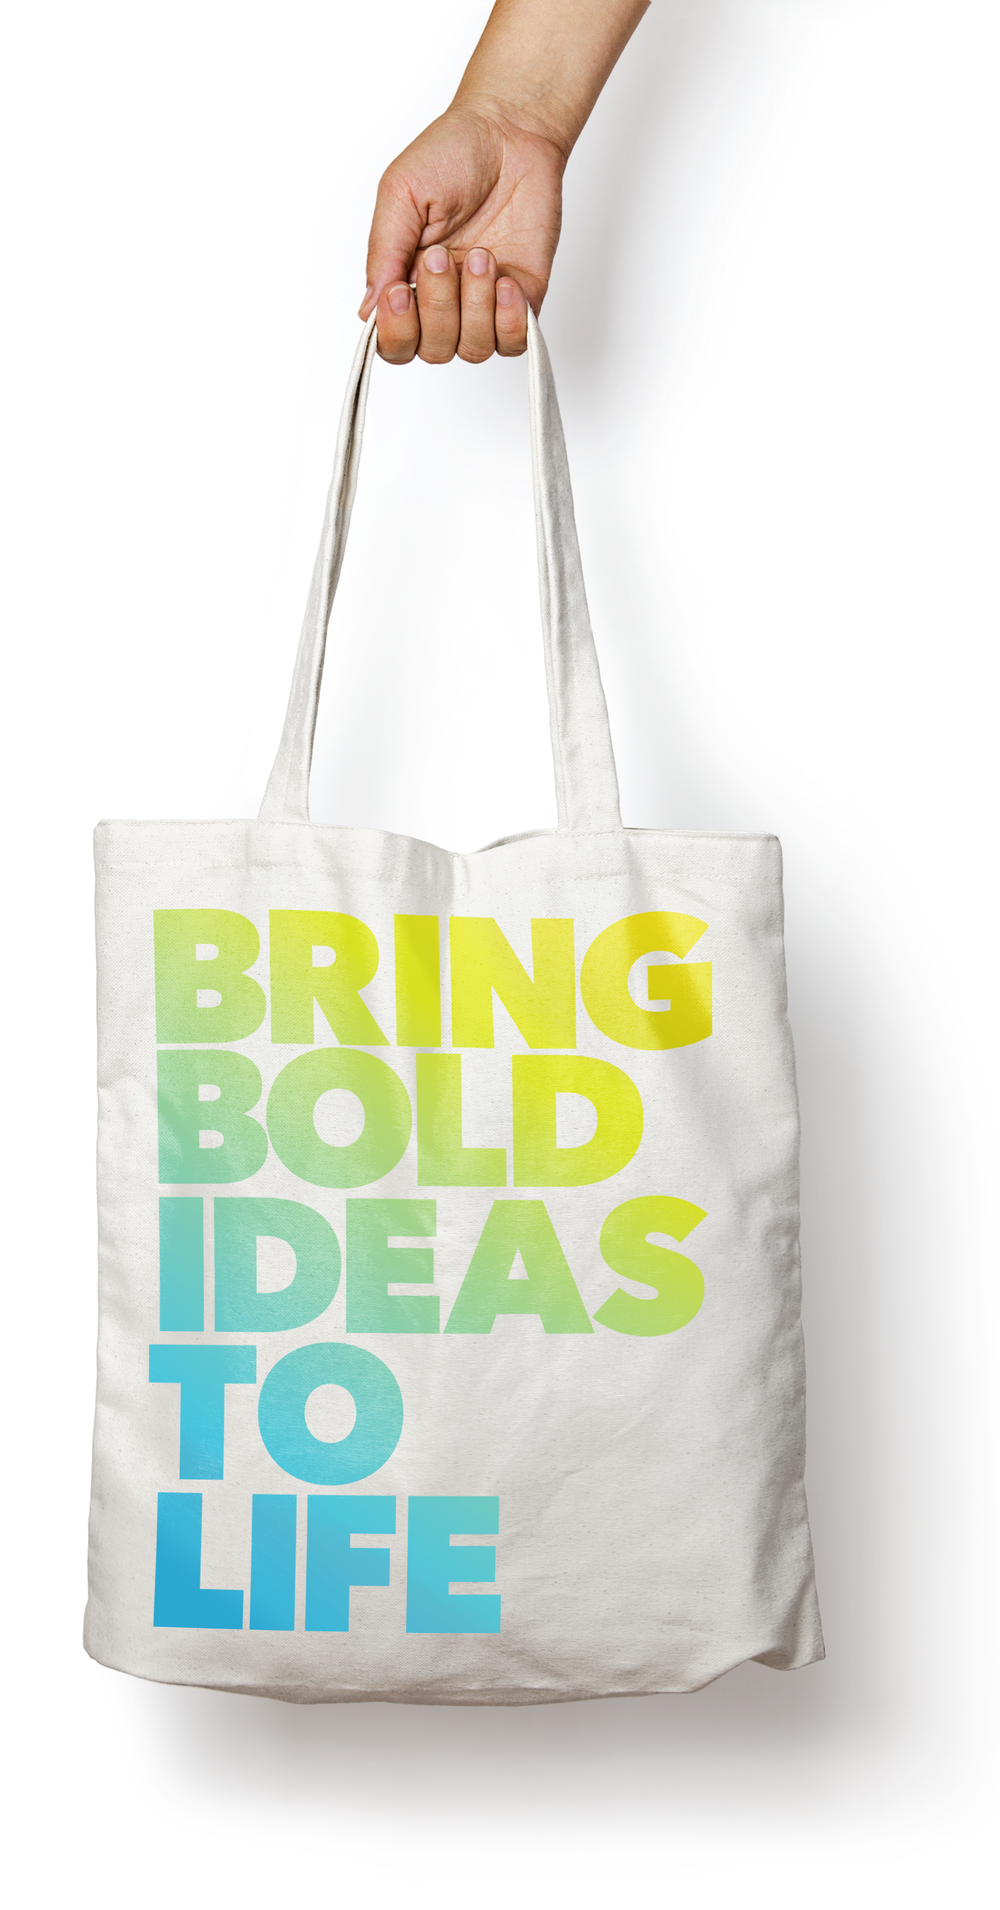 Tides Foundation brand identity logo tote bag design by Good Stuff Partners